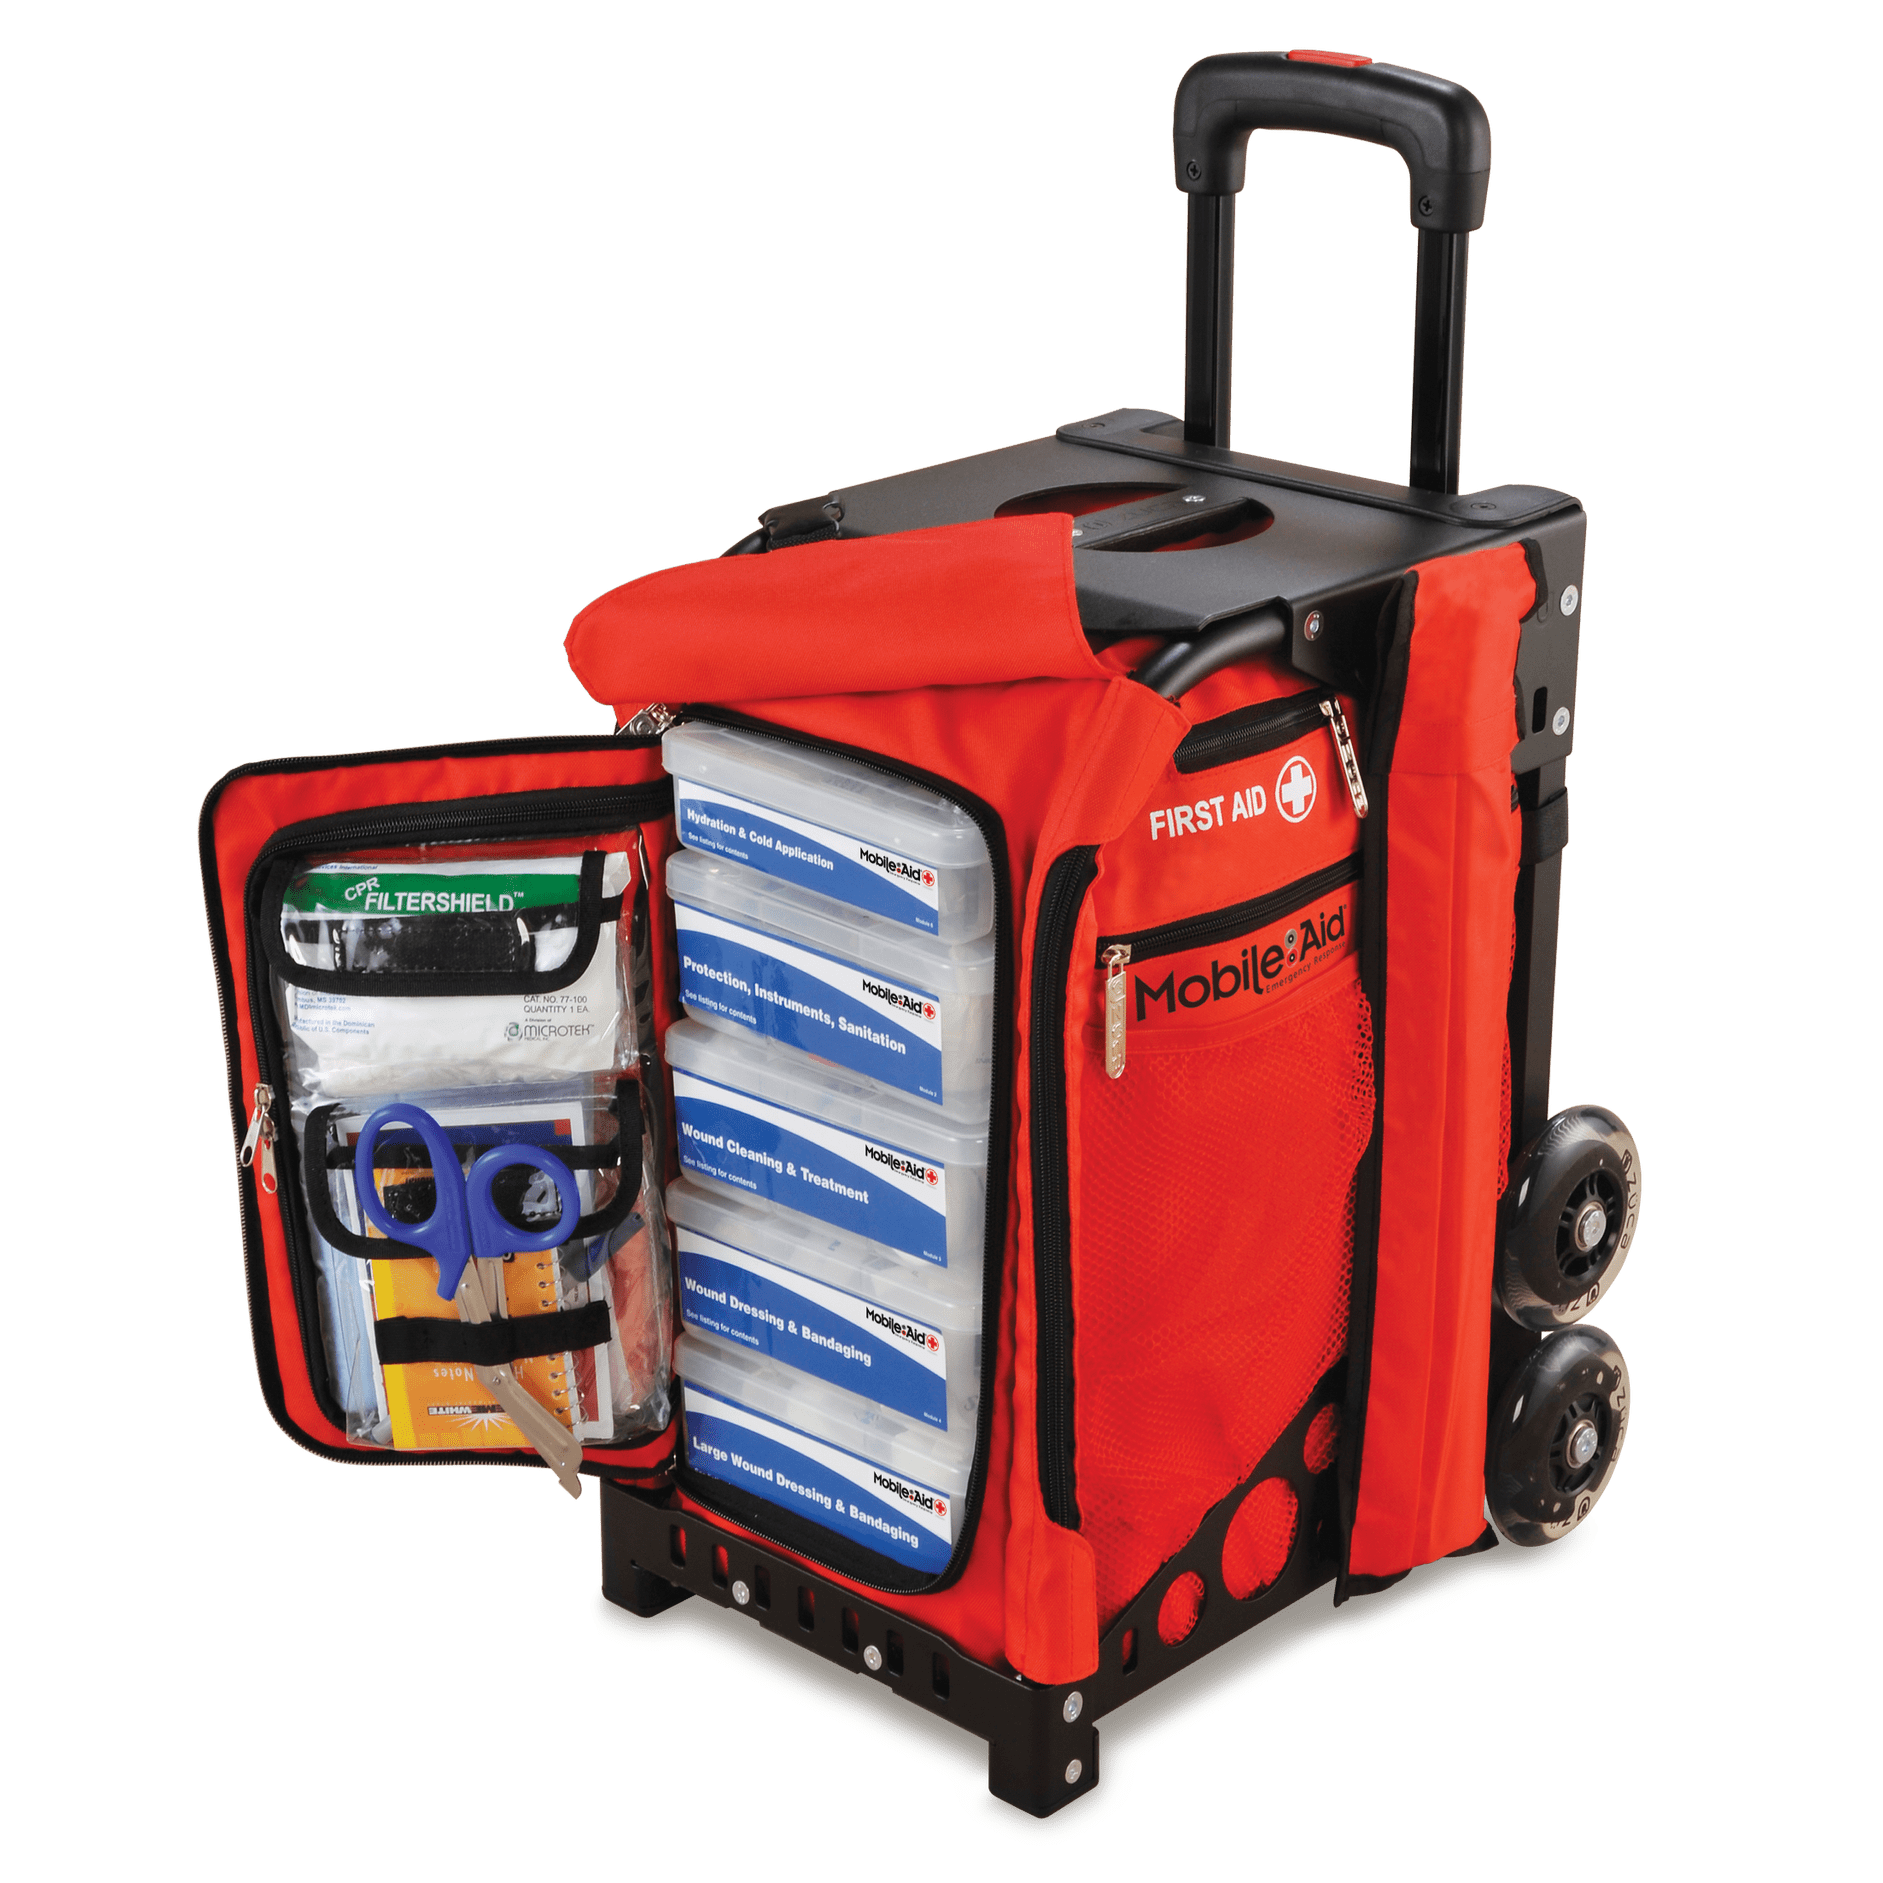 [Fully-loaded] MobileAid EASY-ROLL Hi-Visibility Trauma First Aid Station (31500)